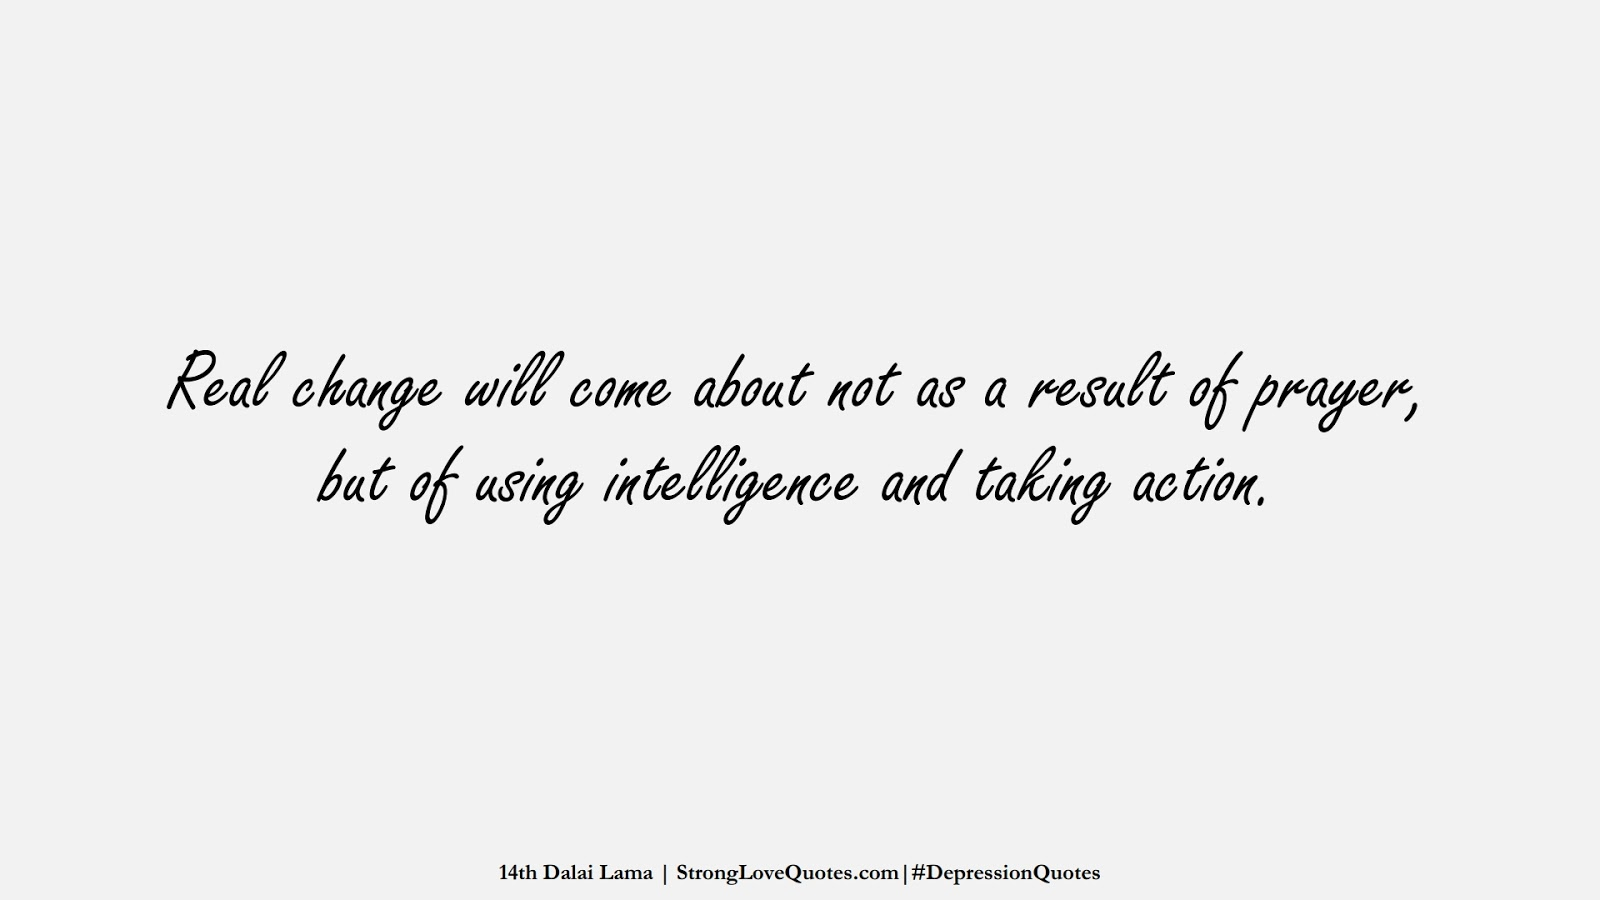 Real change will come about not as a result of prayer, but of using intelligence and taking action. (14th Dalai Lama);  #DepressionQuotes